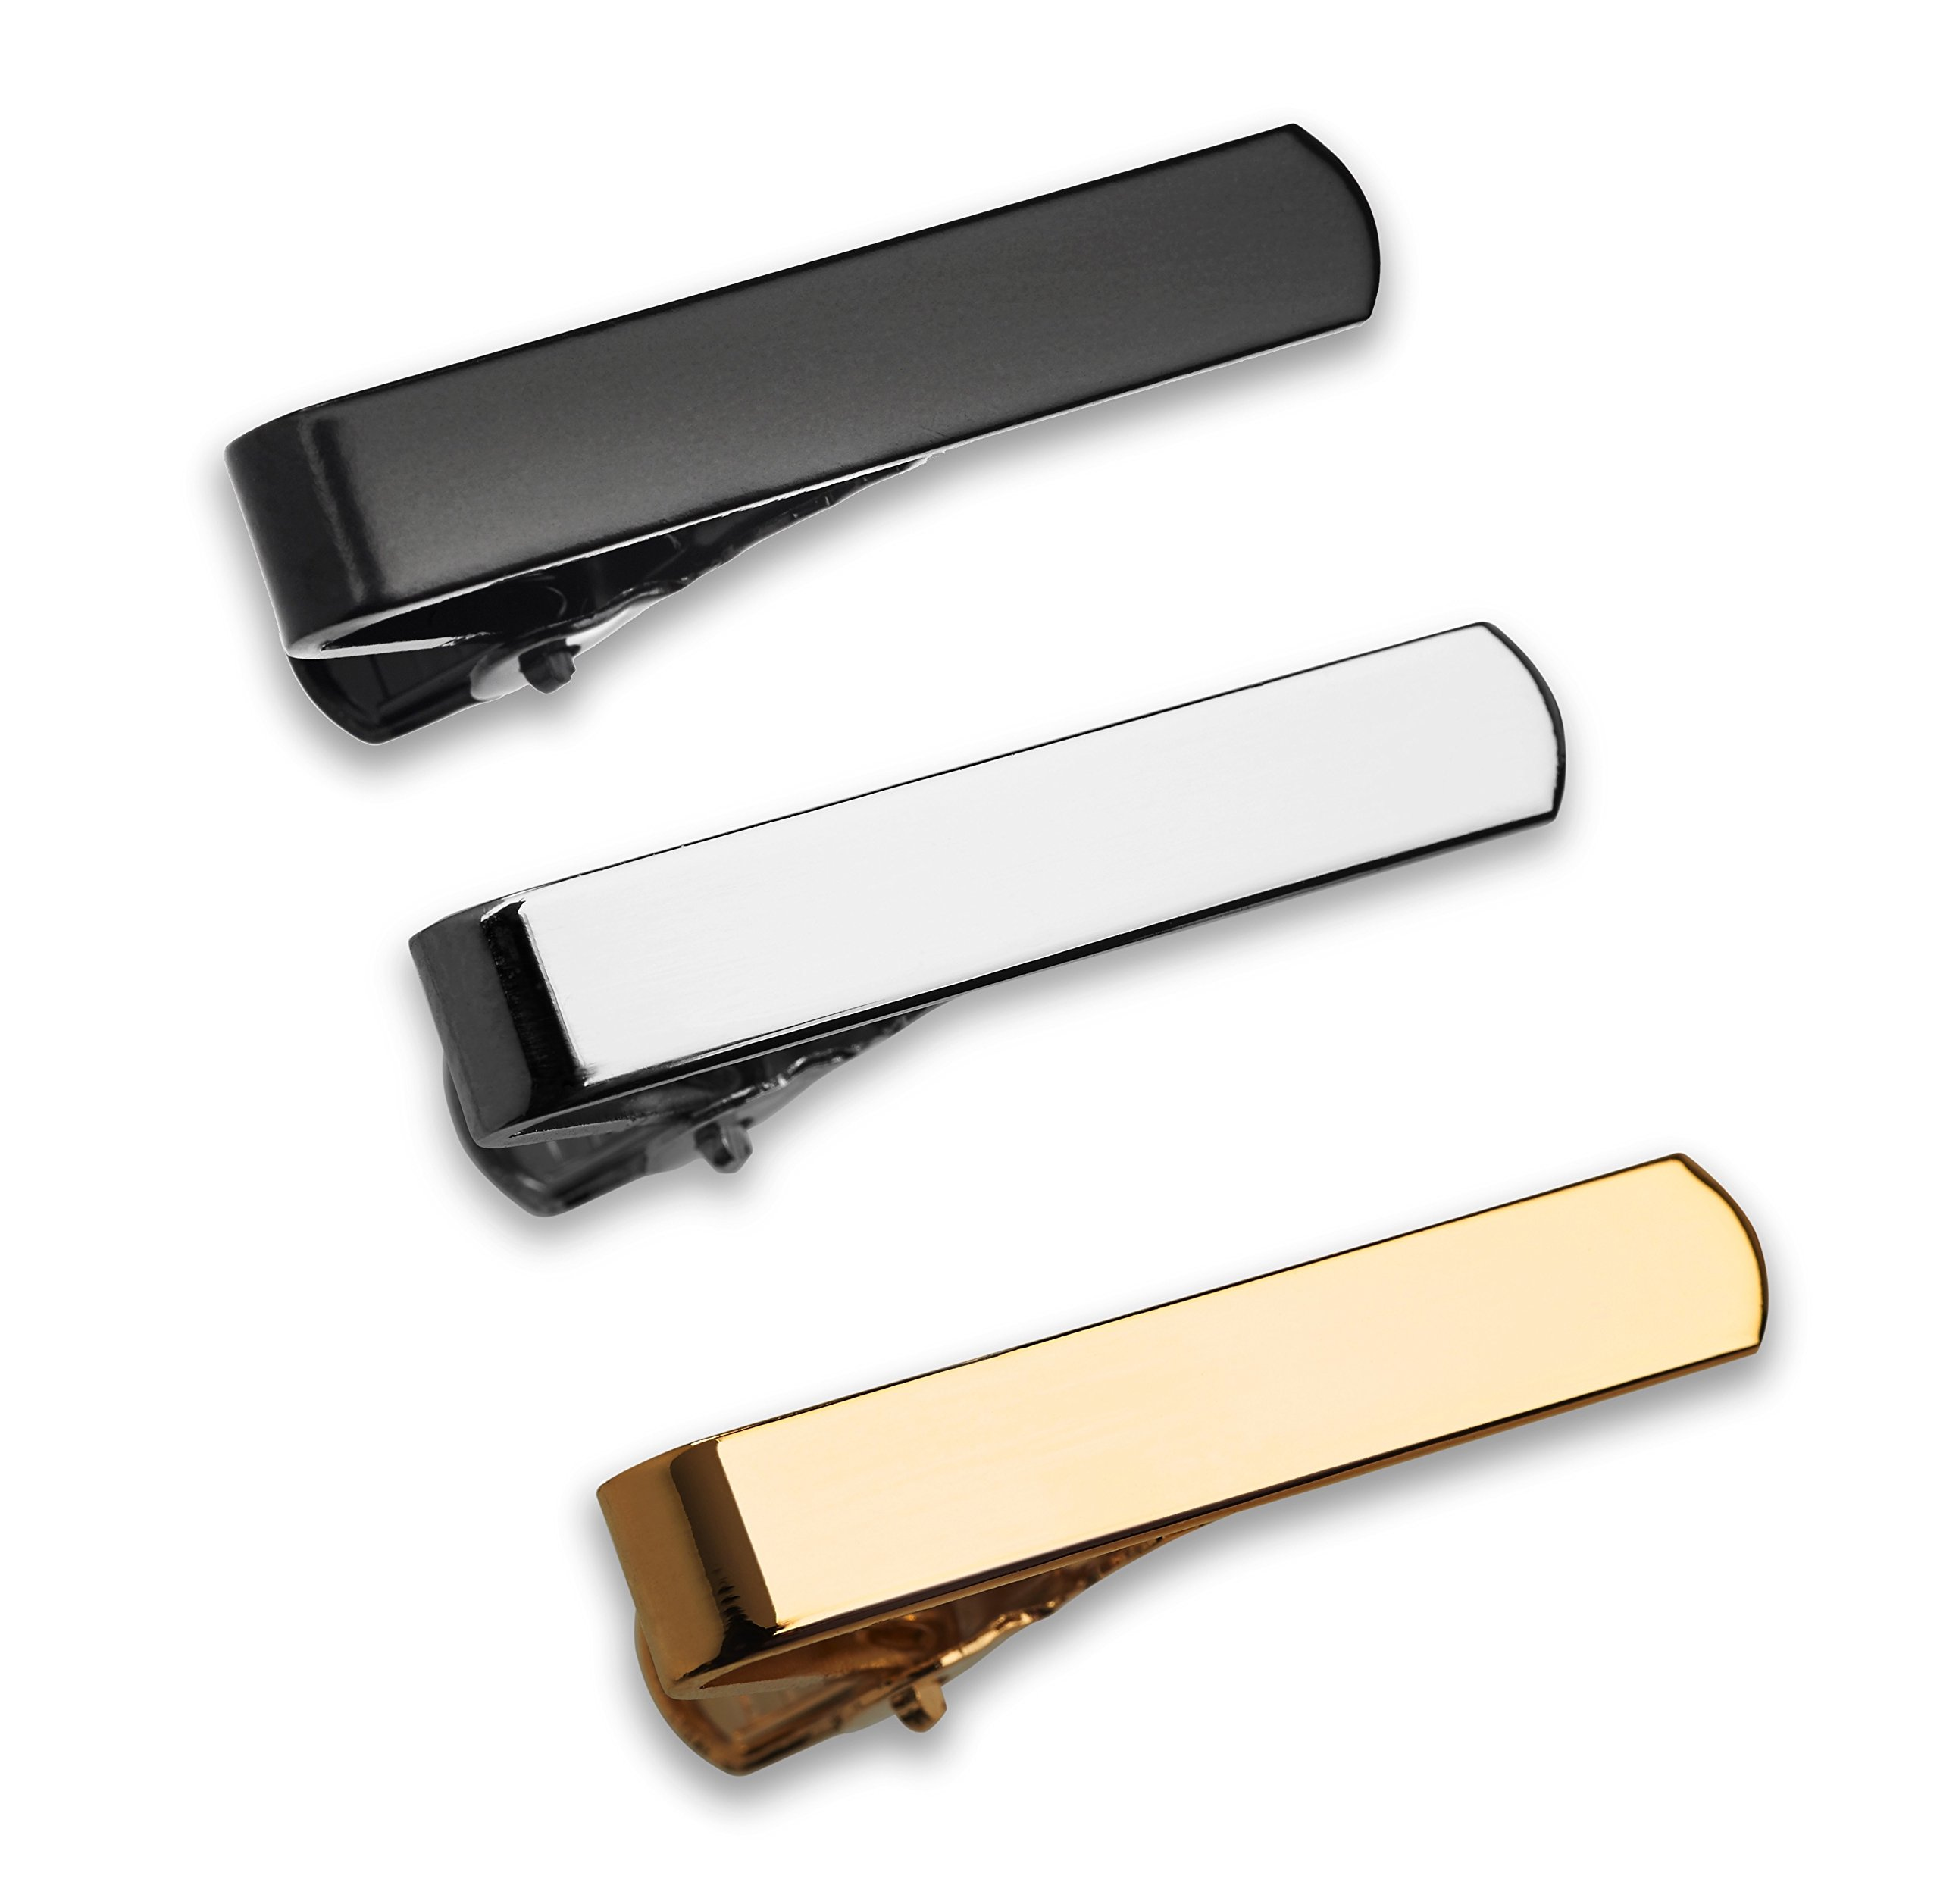 GQ The 3 Pc Tie Bar Set Pinch Clasp 1.1 Inch for Trendy Skinny Ties, Silver, Gold Tone and Black Gift Boxed